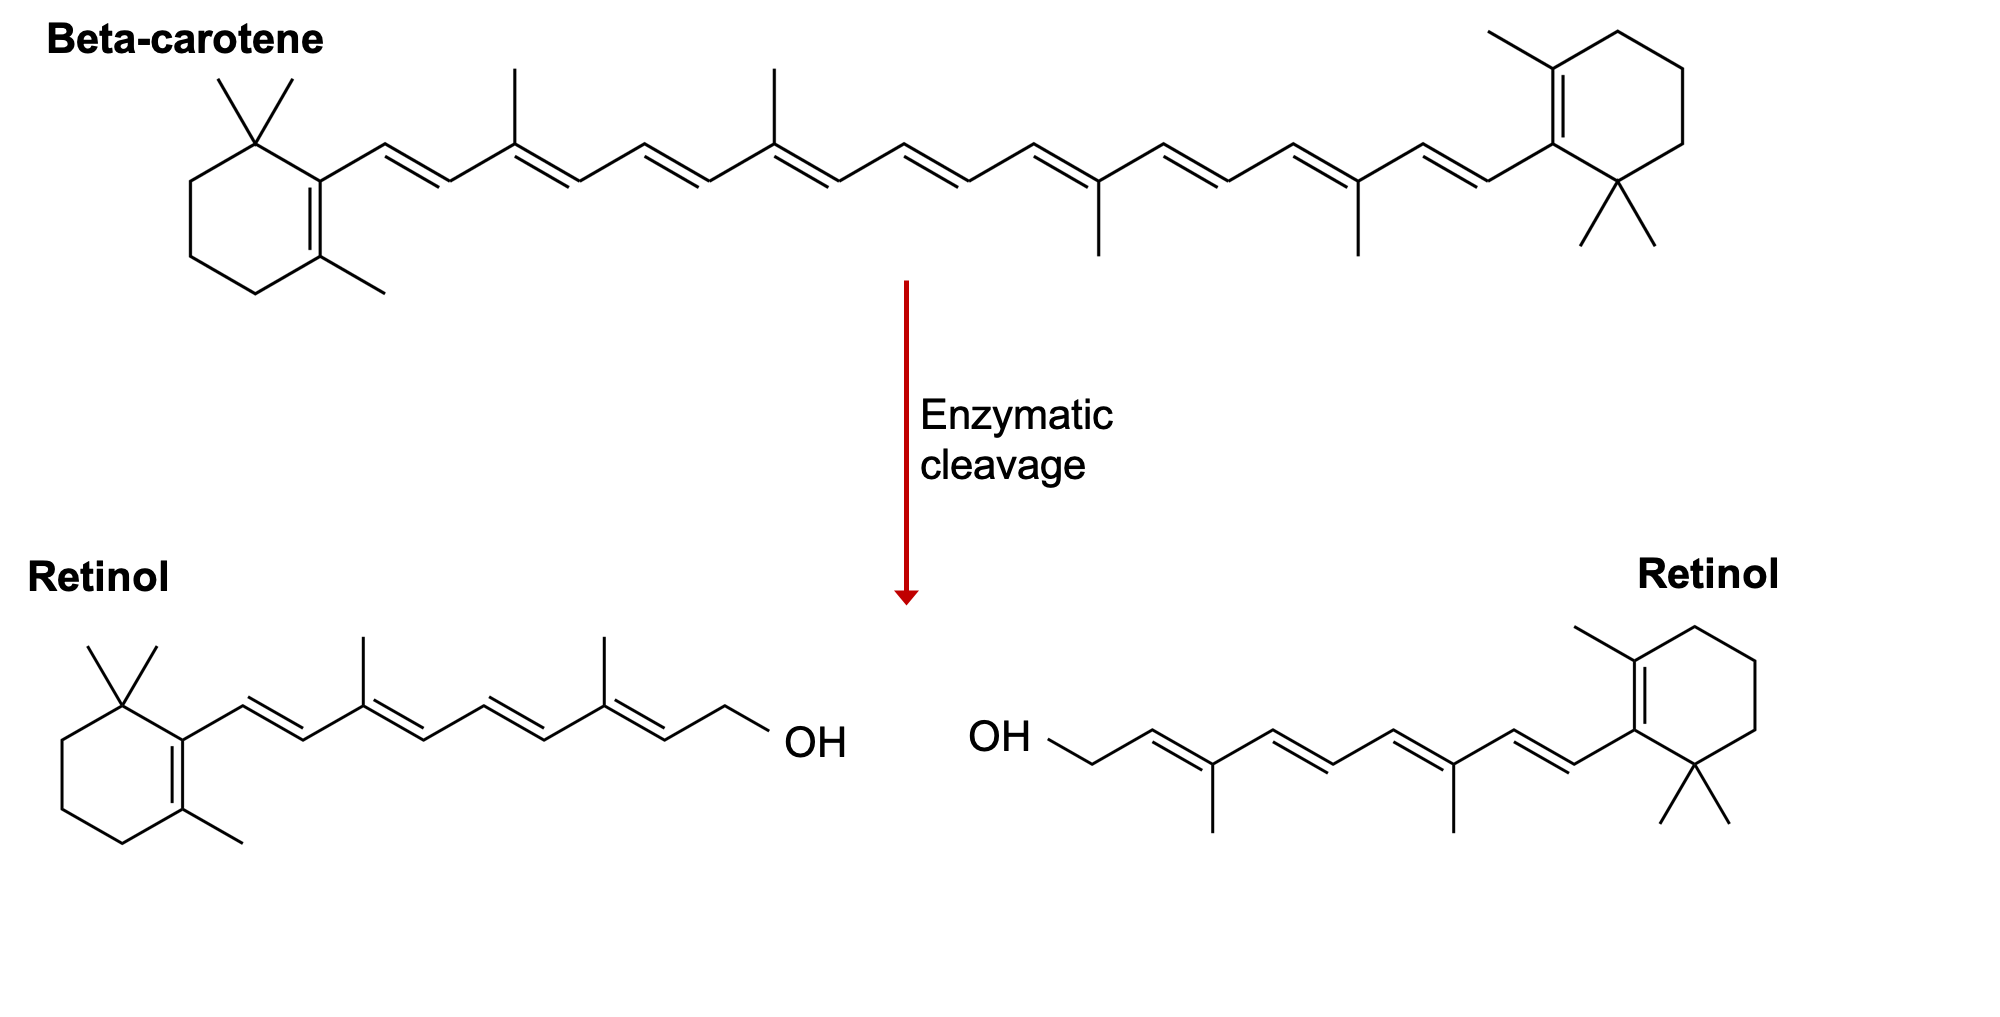 The image shows the skeletal formula of beta-carotene and how two molecules of retinol are formed when it is cleaved in half by an enzyme.